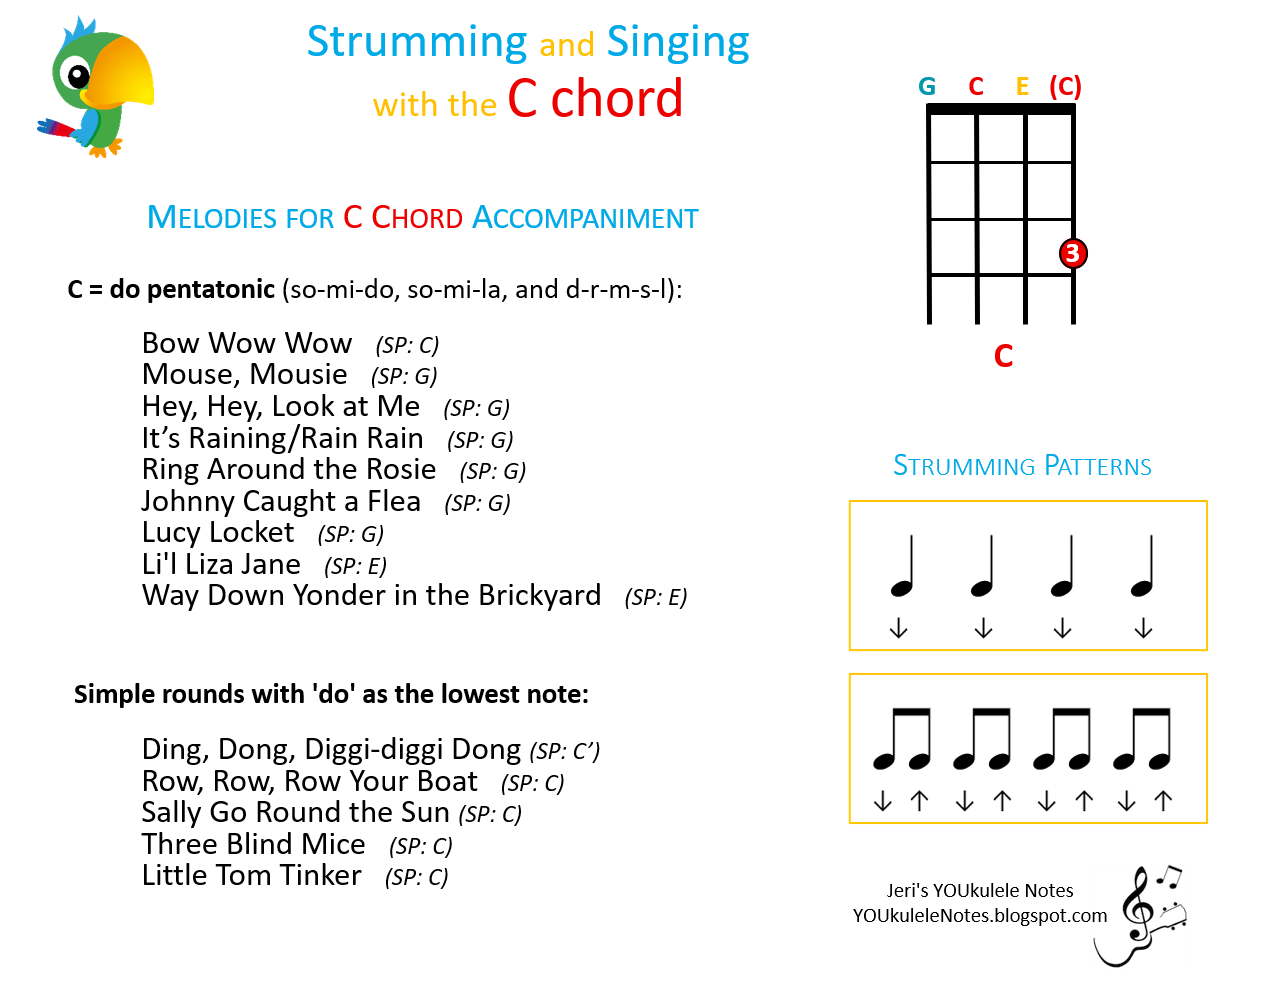 Jeris Youkulele Notes August 2016 Uke Fretboard Diagram Explore Chord Diagrams And Demos At Ukulelechordscom